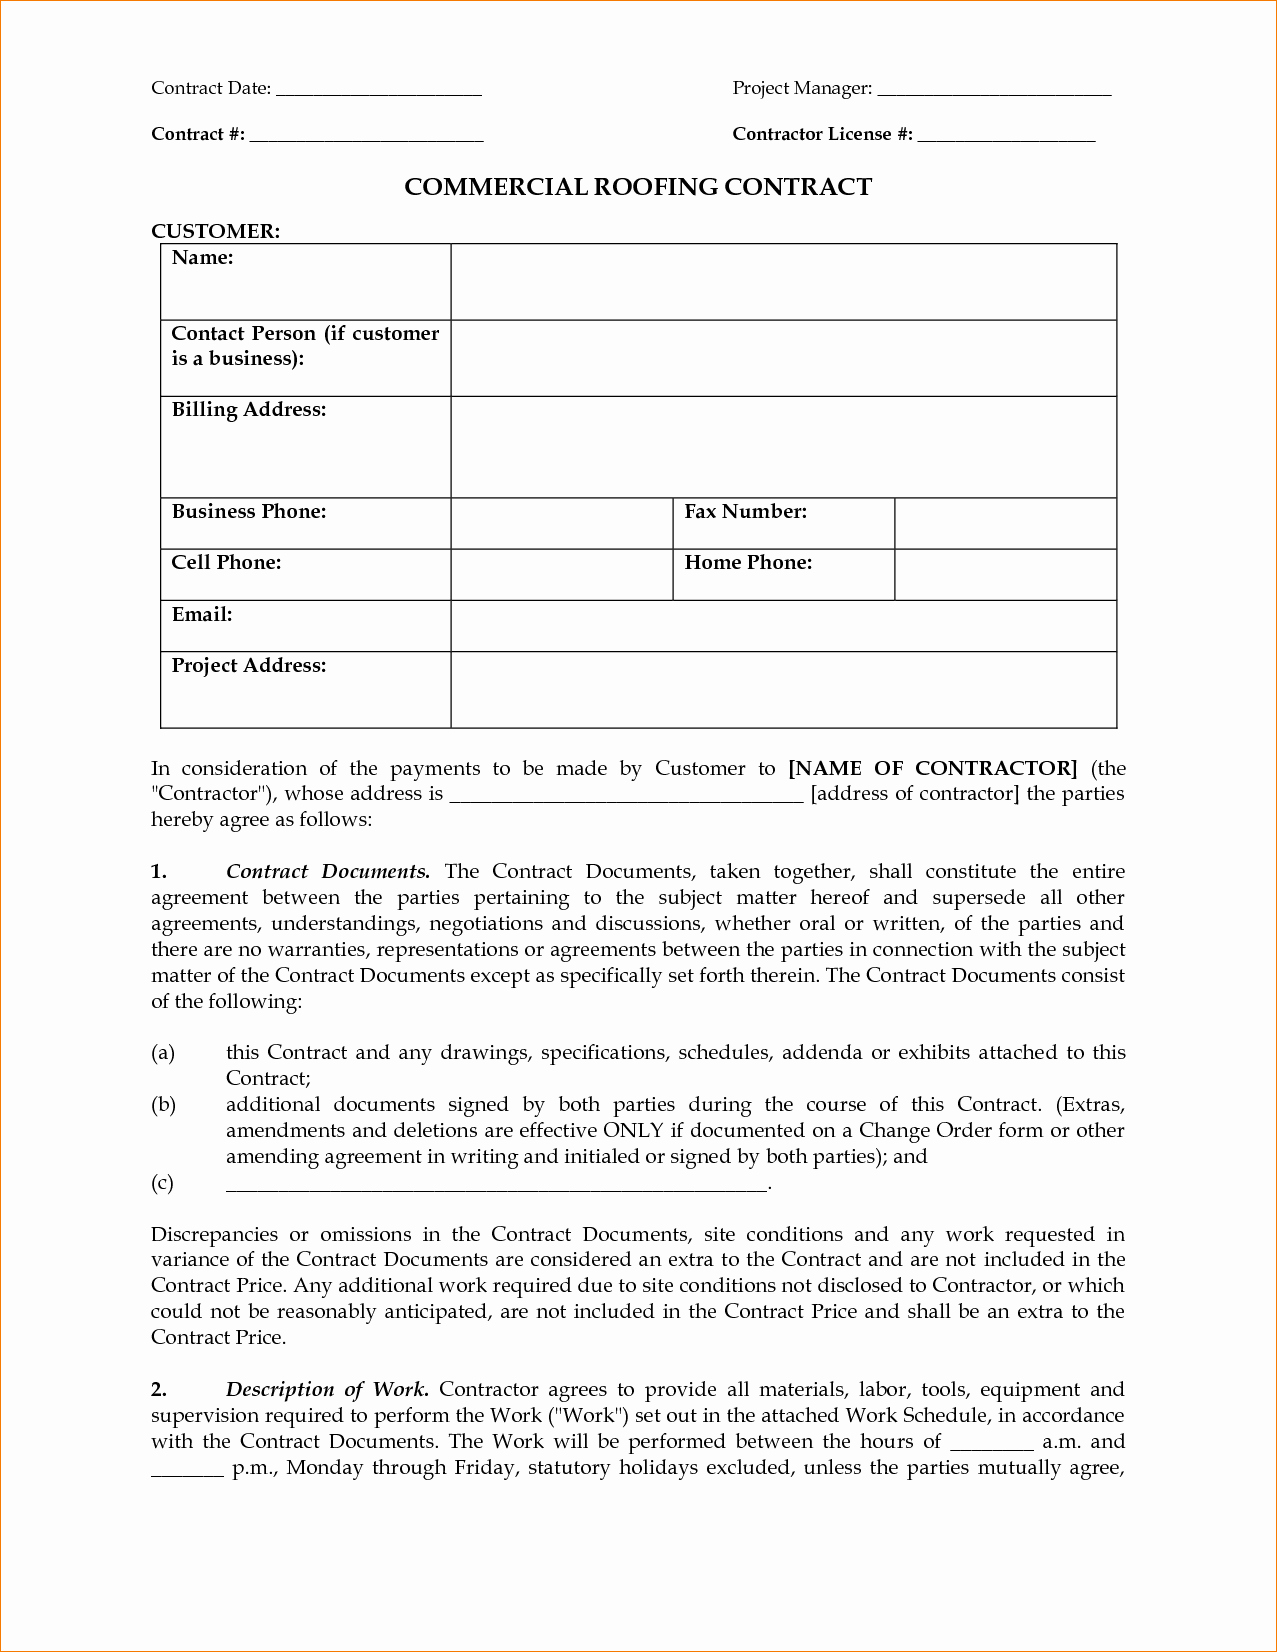 Free Residential Roofing Contract Template Fresh Contract Roofing Contract Template